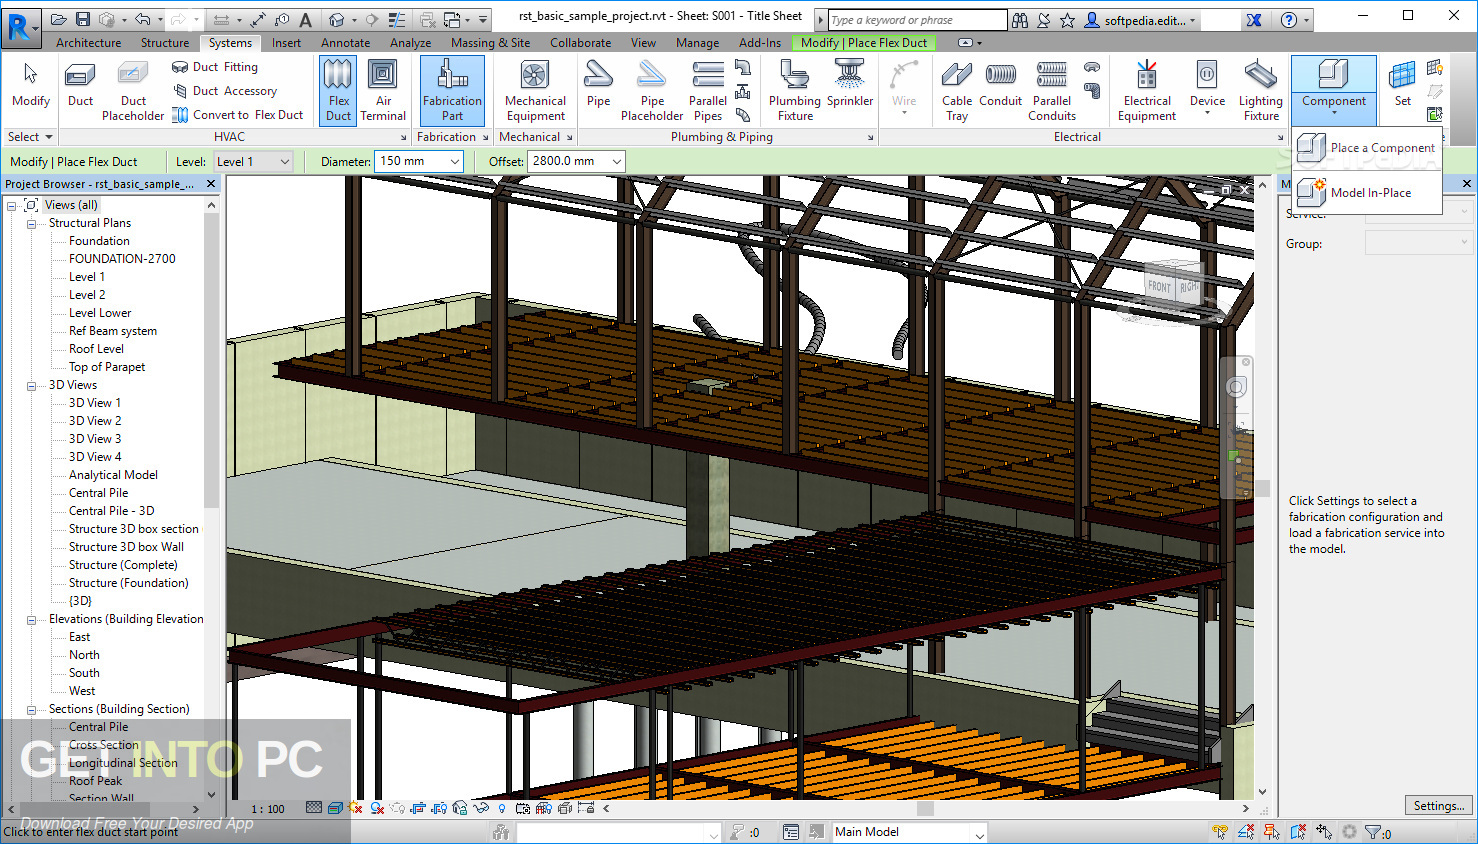 Autodesk Revit 2021 Latest Version Download